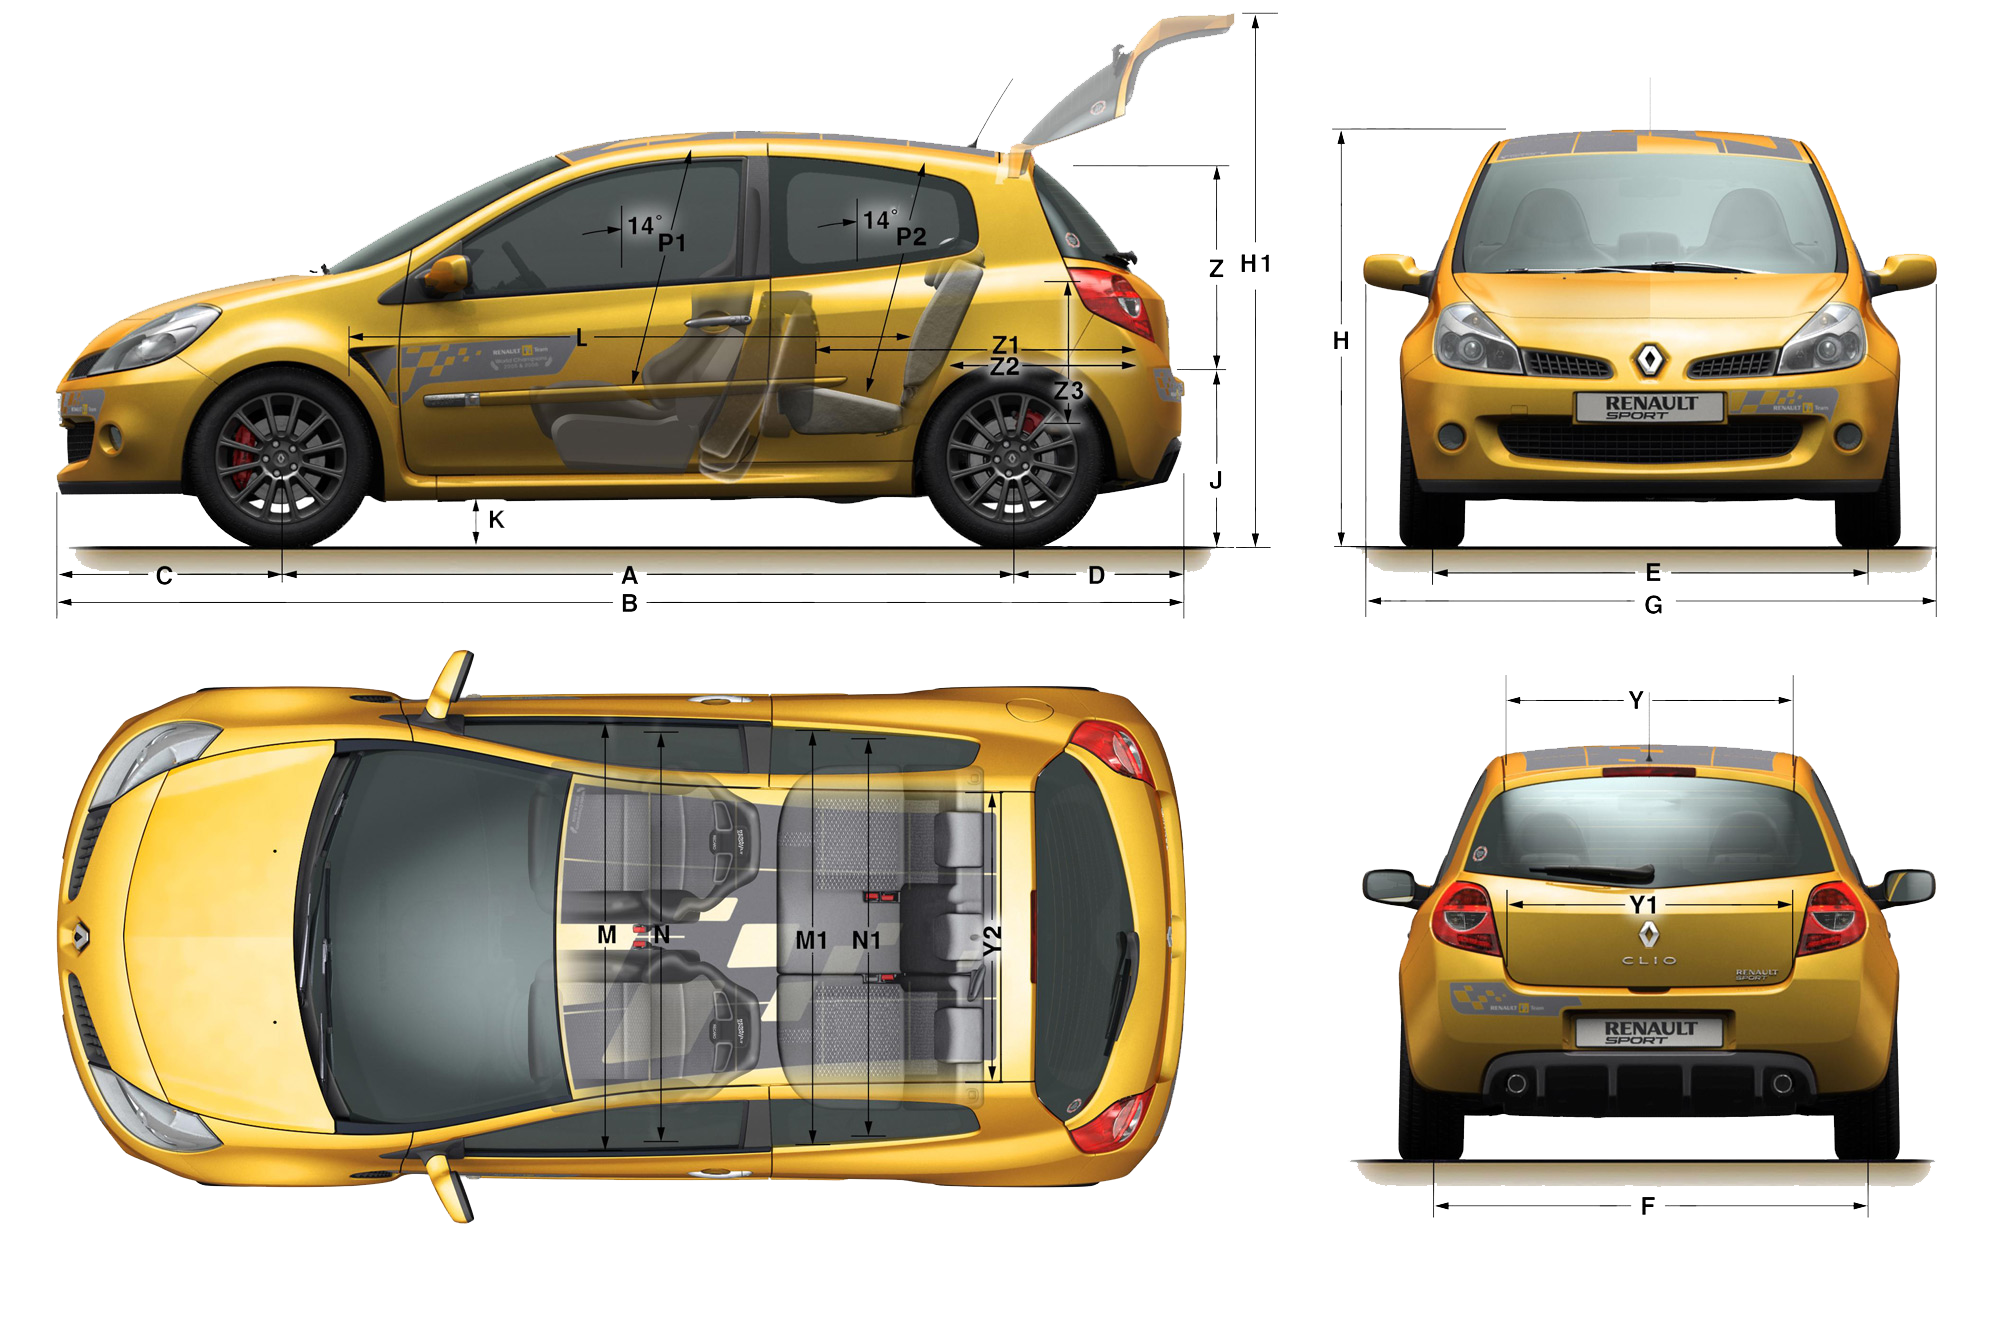 car blueprints renault clio sport r27 blueprints vector drawings clipart and pdf templates. Black Bedroom Furniture Sets. Home Design Ideas